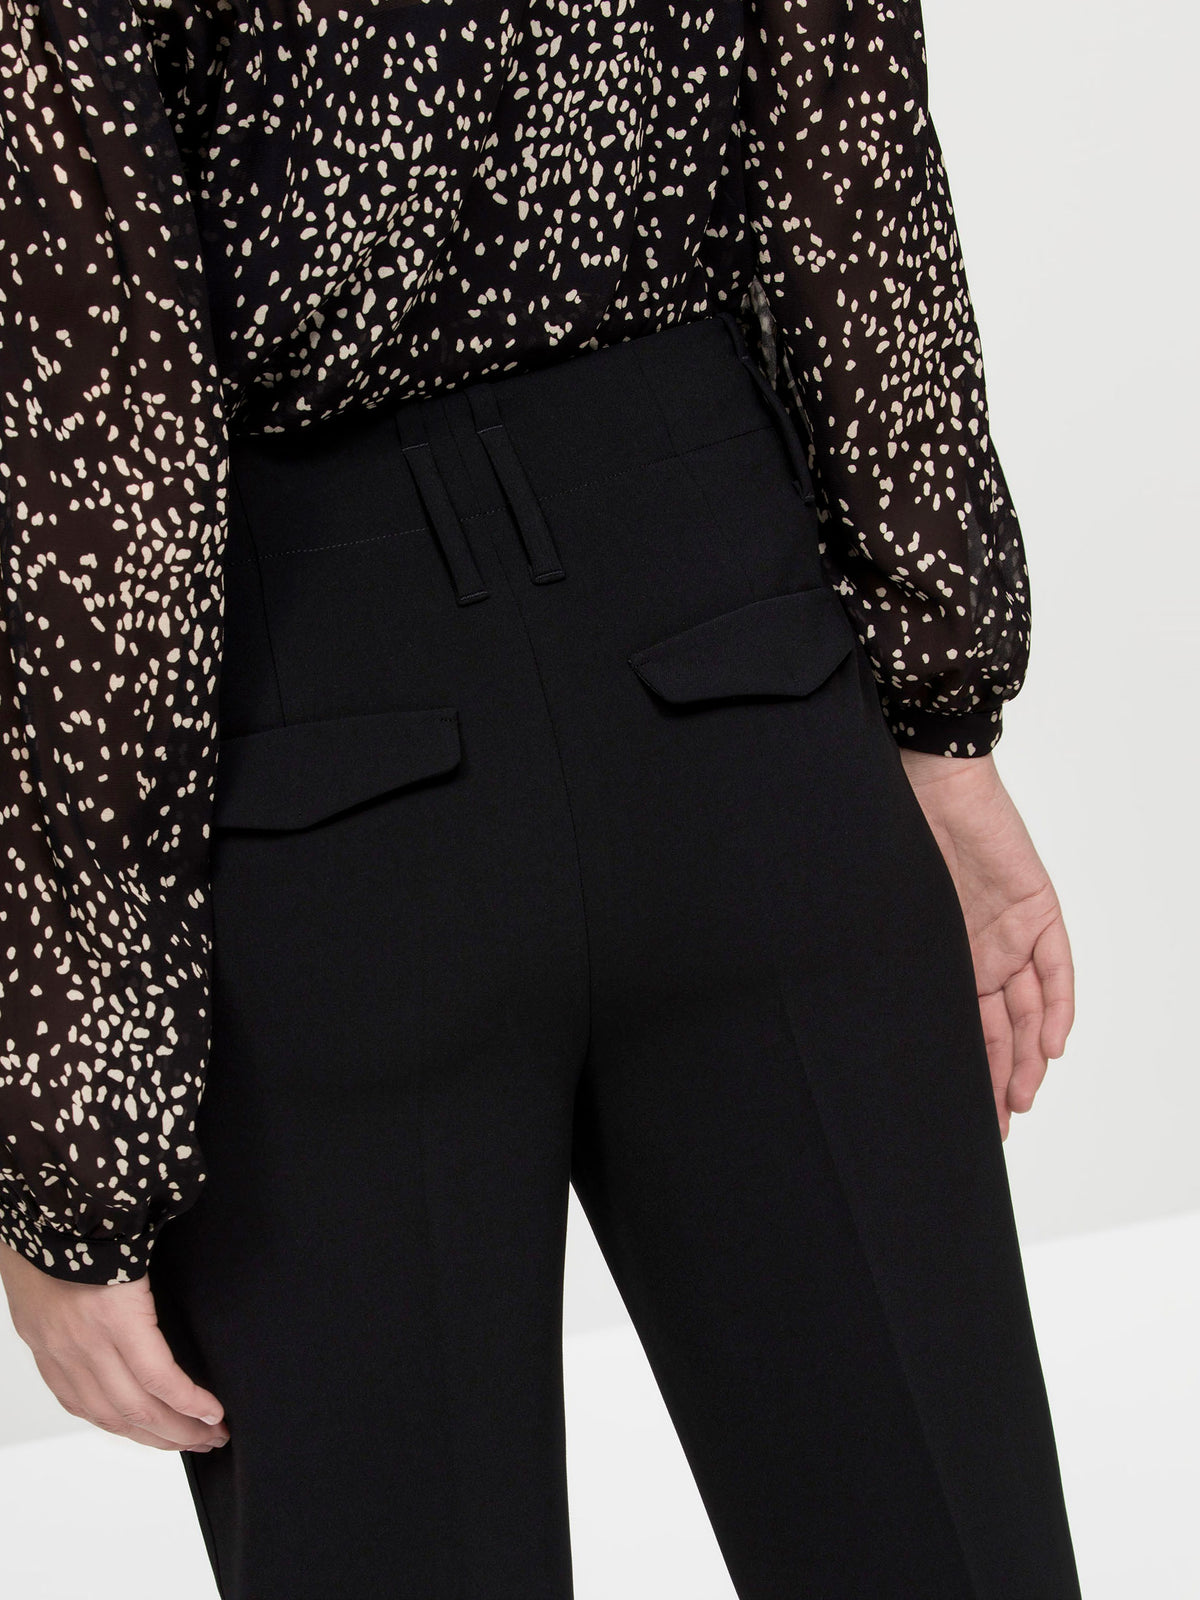 Luisa Cerano Black Tapered Smart Trousers